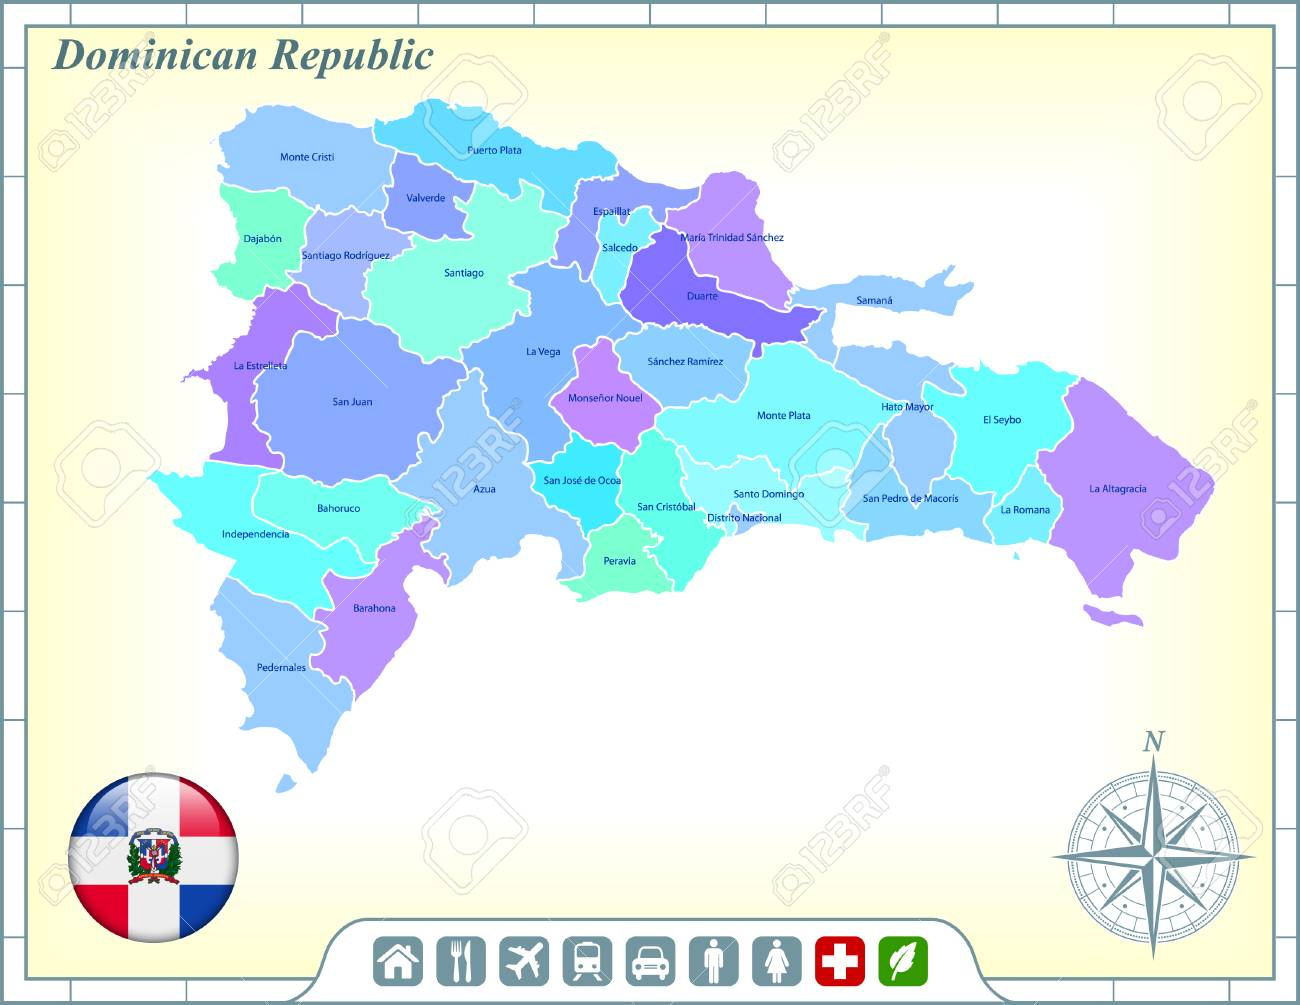 Dominican Republic Map With Flag Buttons And Assistance & Activates ...